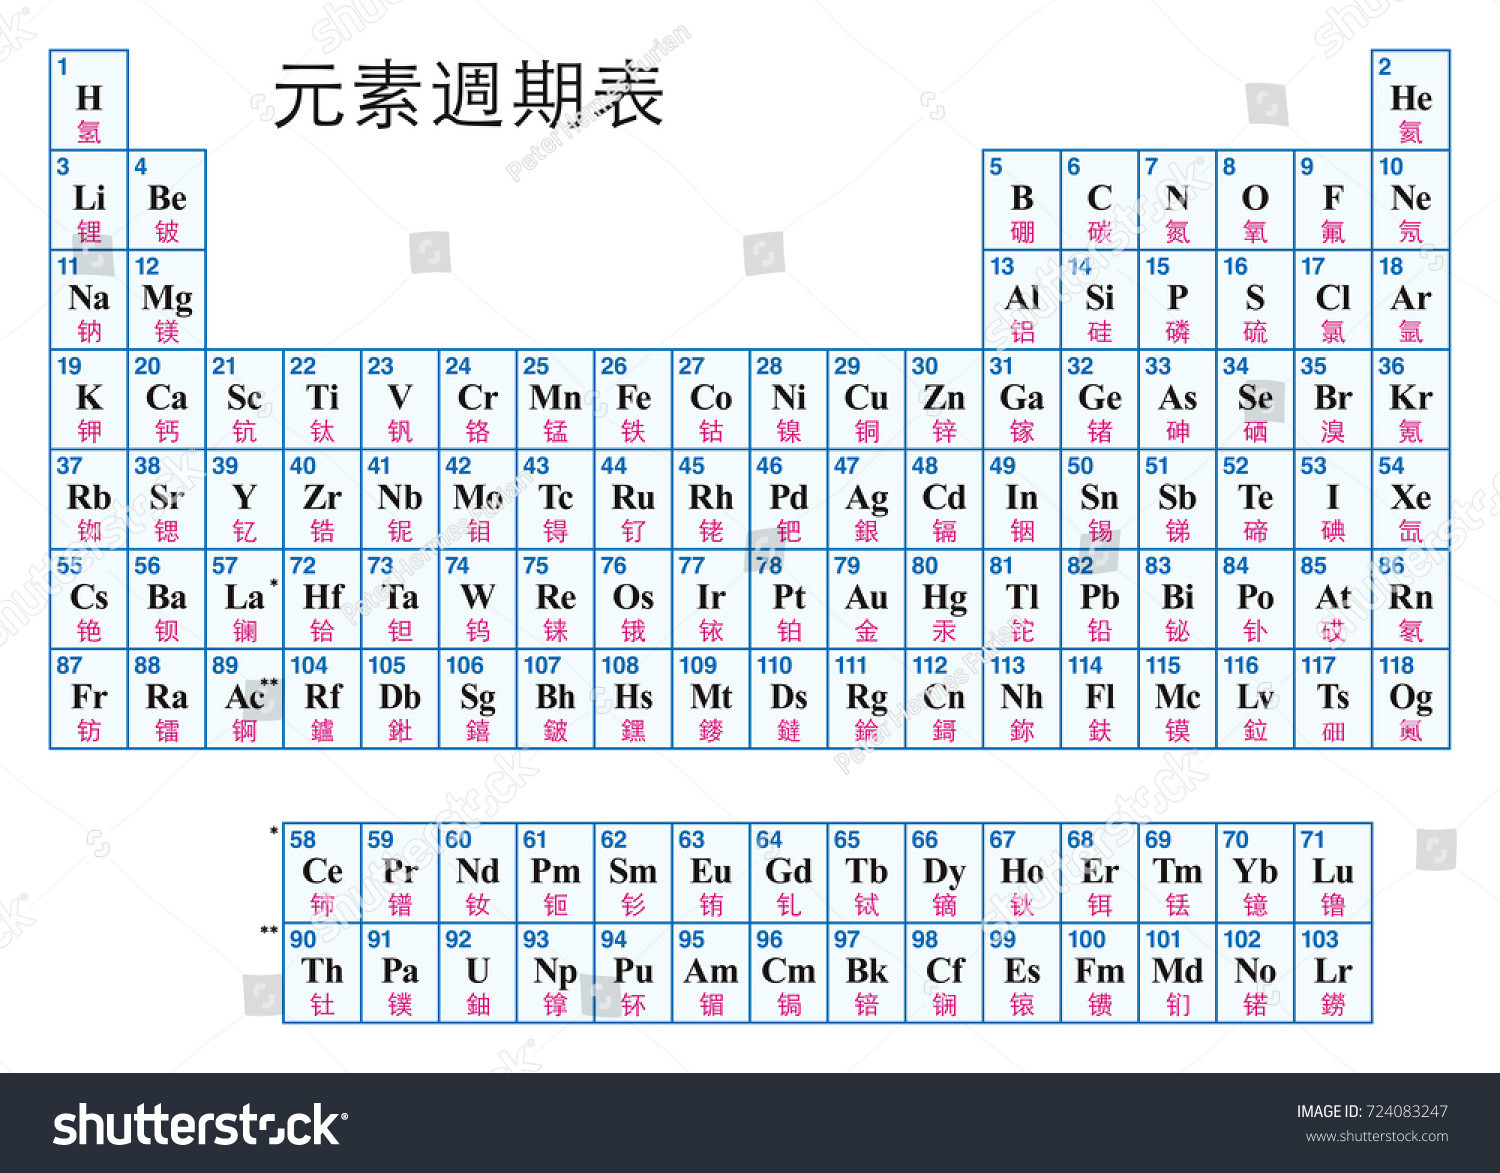 Periodic table elements chinese tabular arrangement stock vector periodic table of the elements chinese tabular arrangement of the chemical elements with their urtaz Image collections